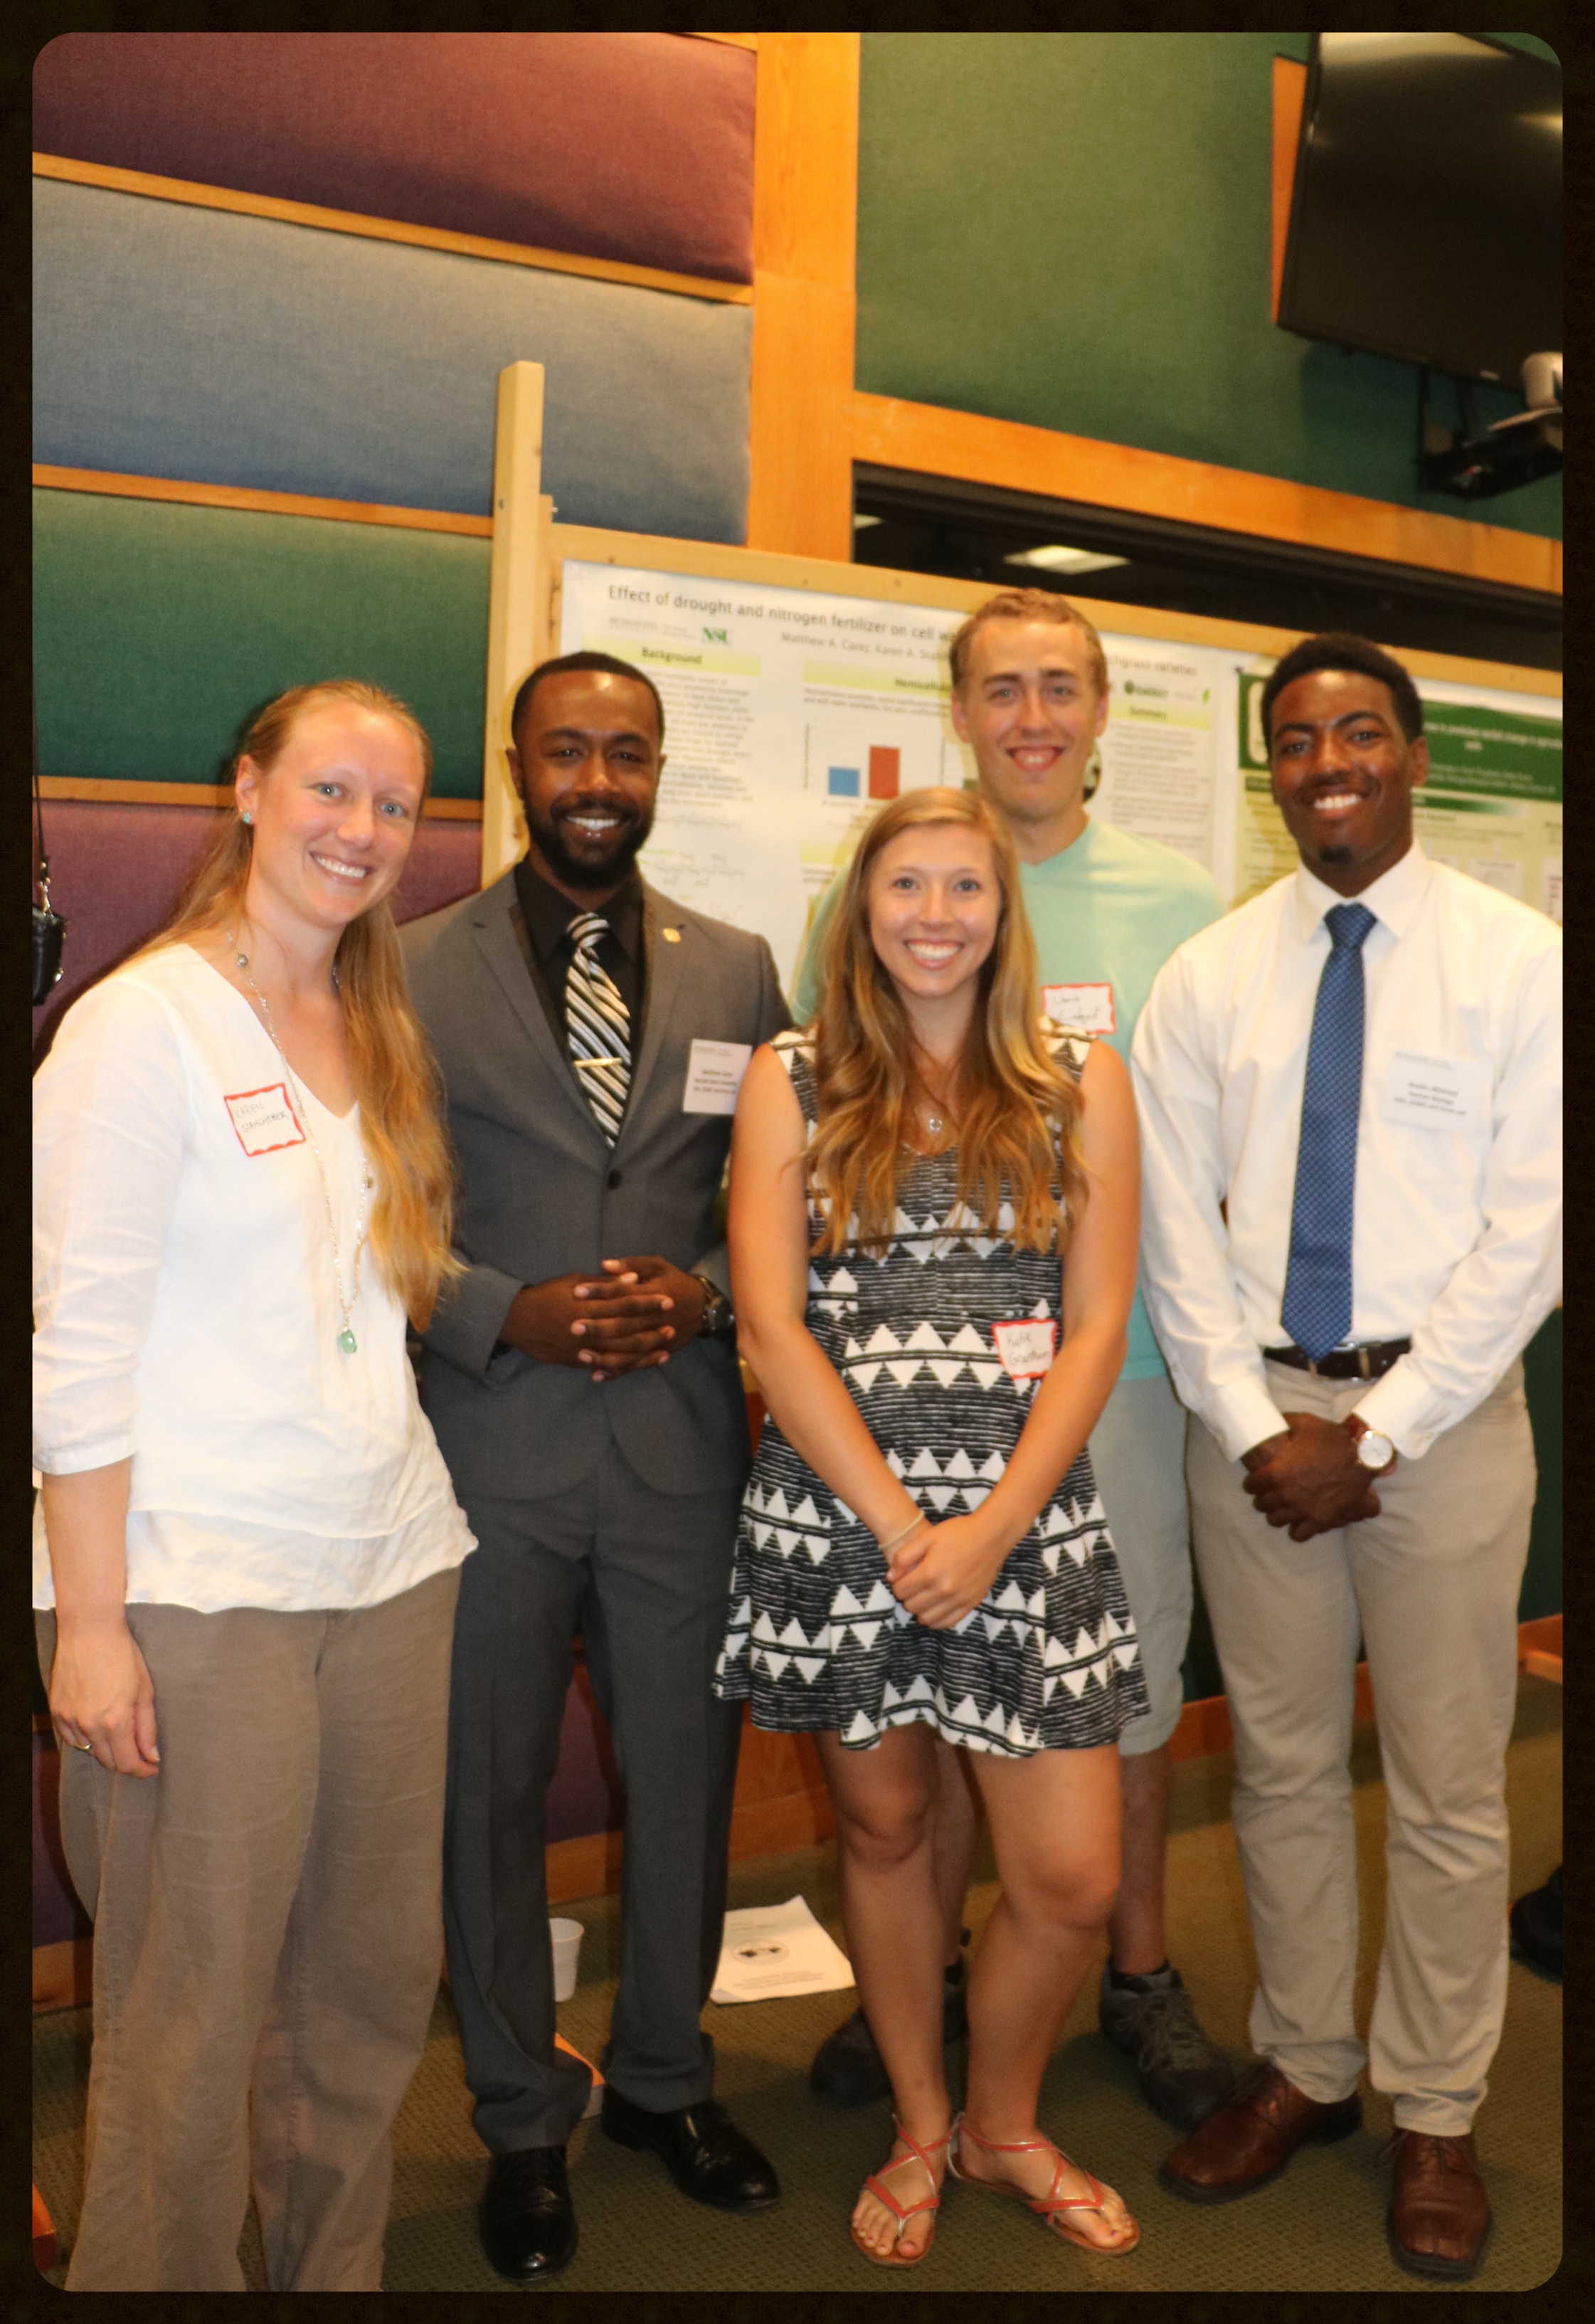 Gross Lab researchers Karen, Matthew, Katie, Jacob & Austin (left to right) at the 2015 Summer Symposium.